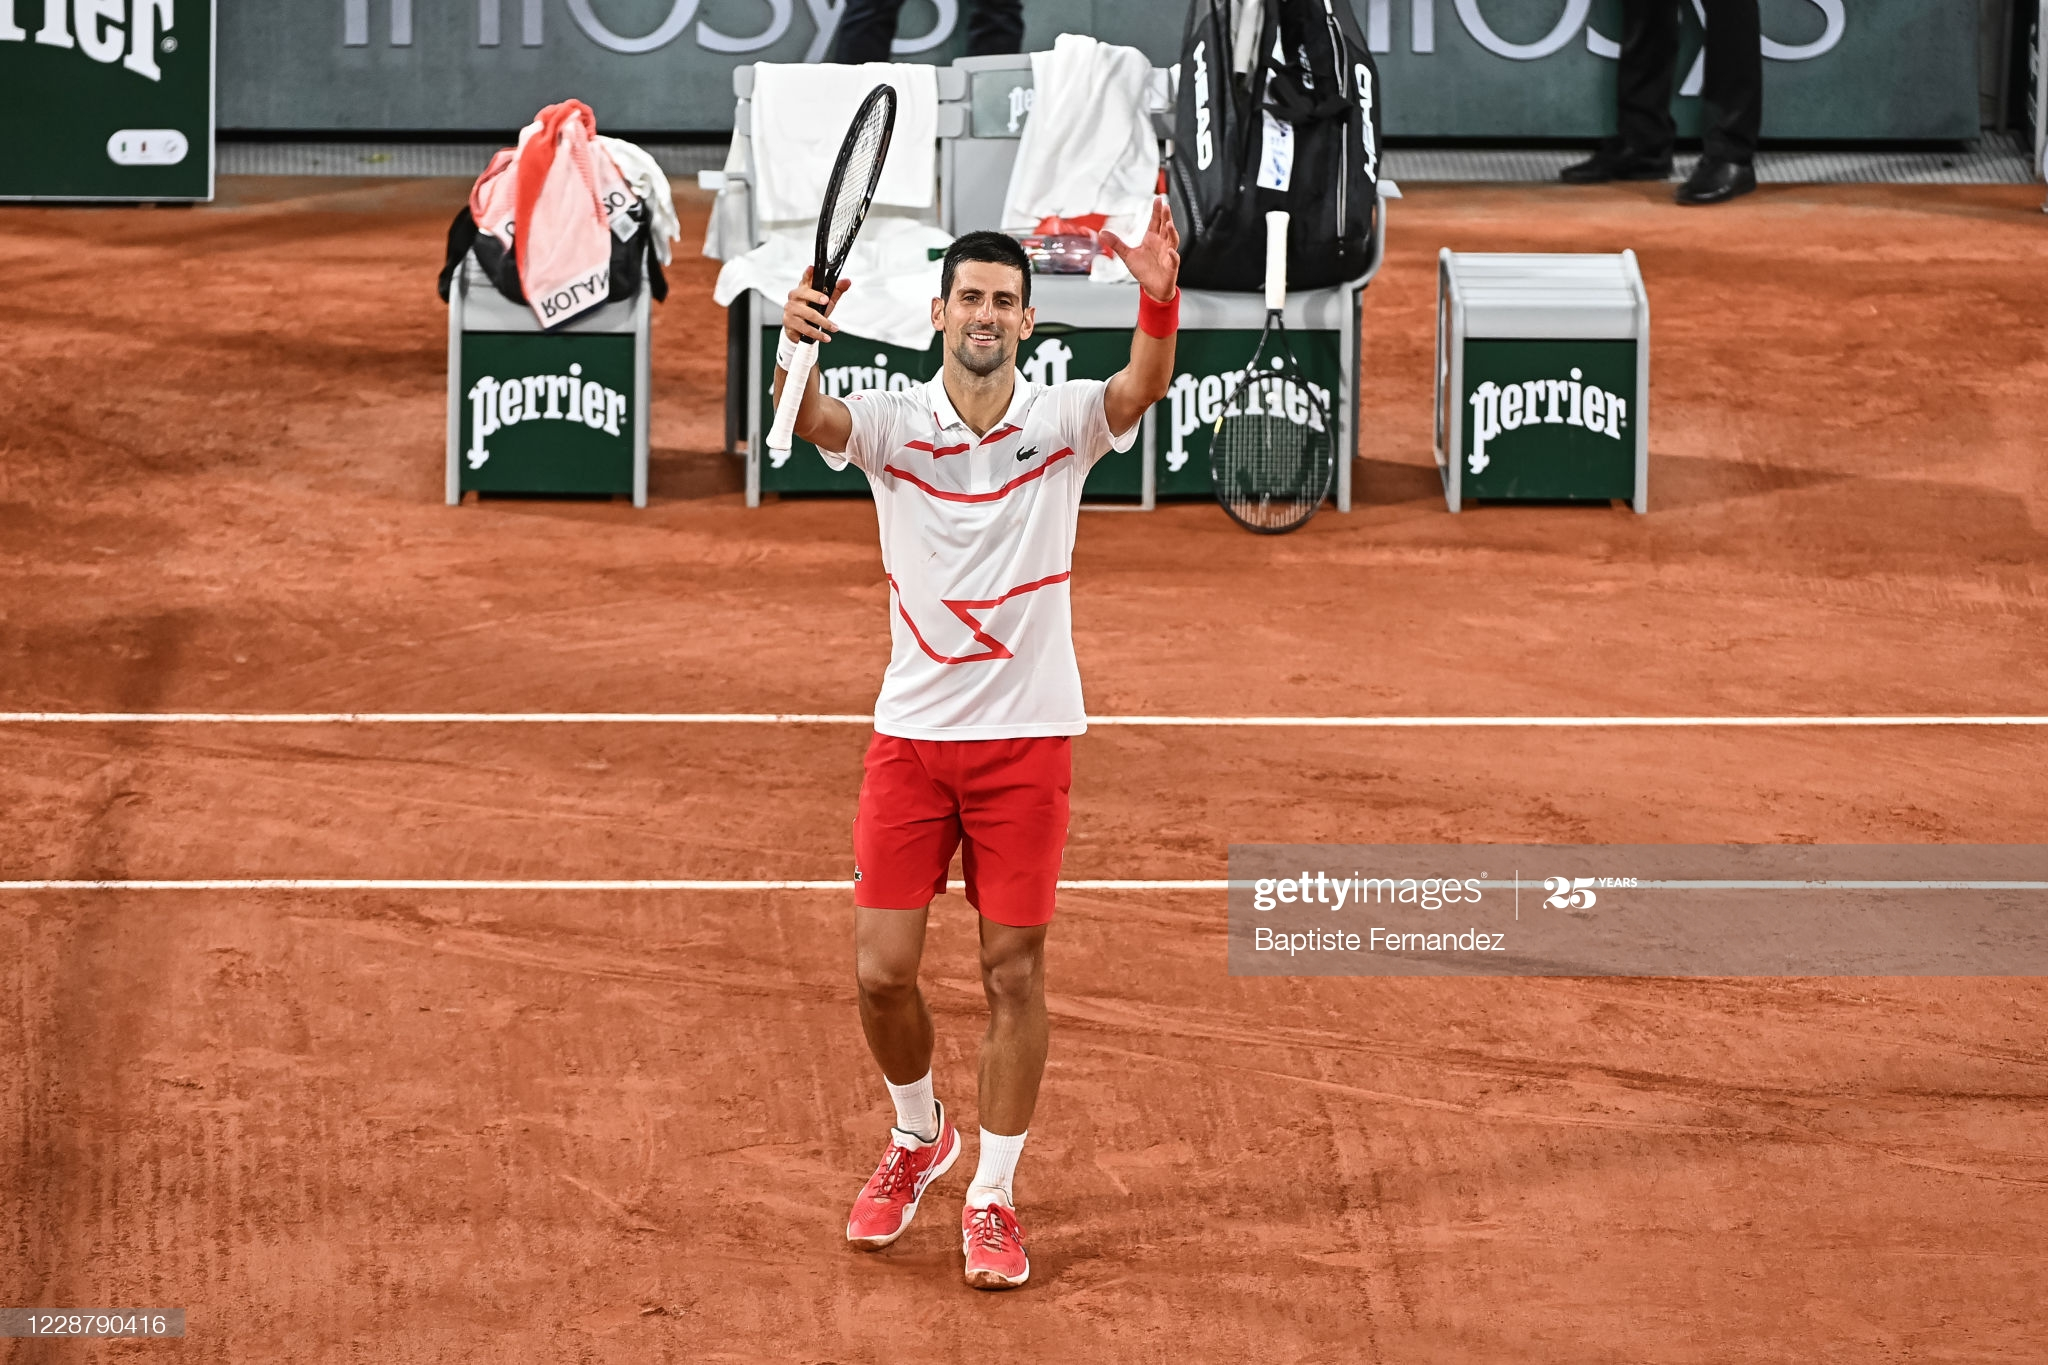 djokovic day 3 french open.223